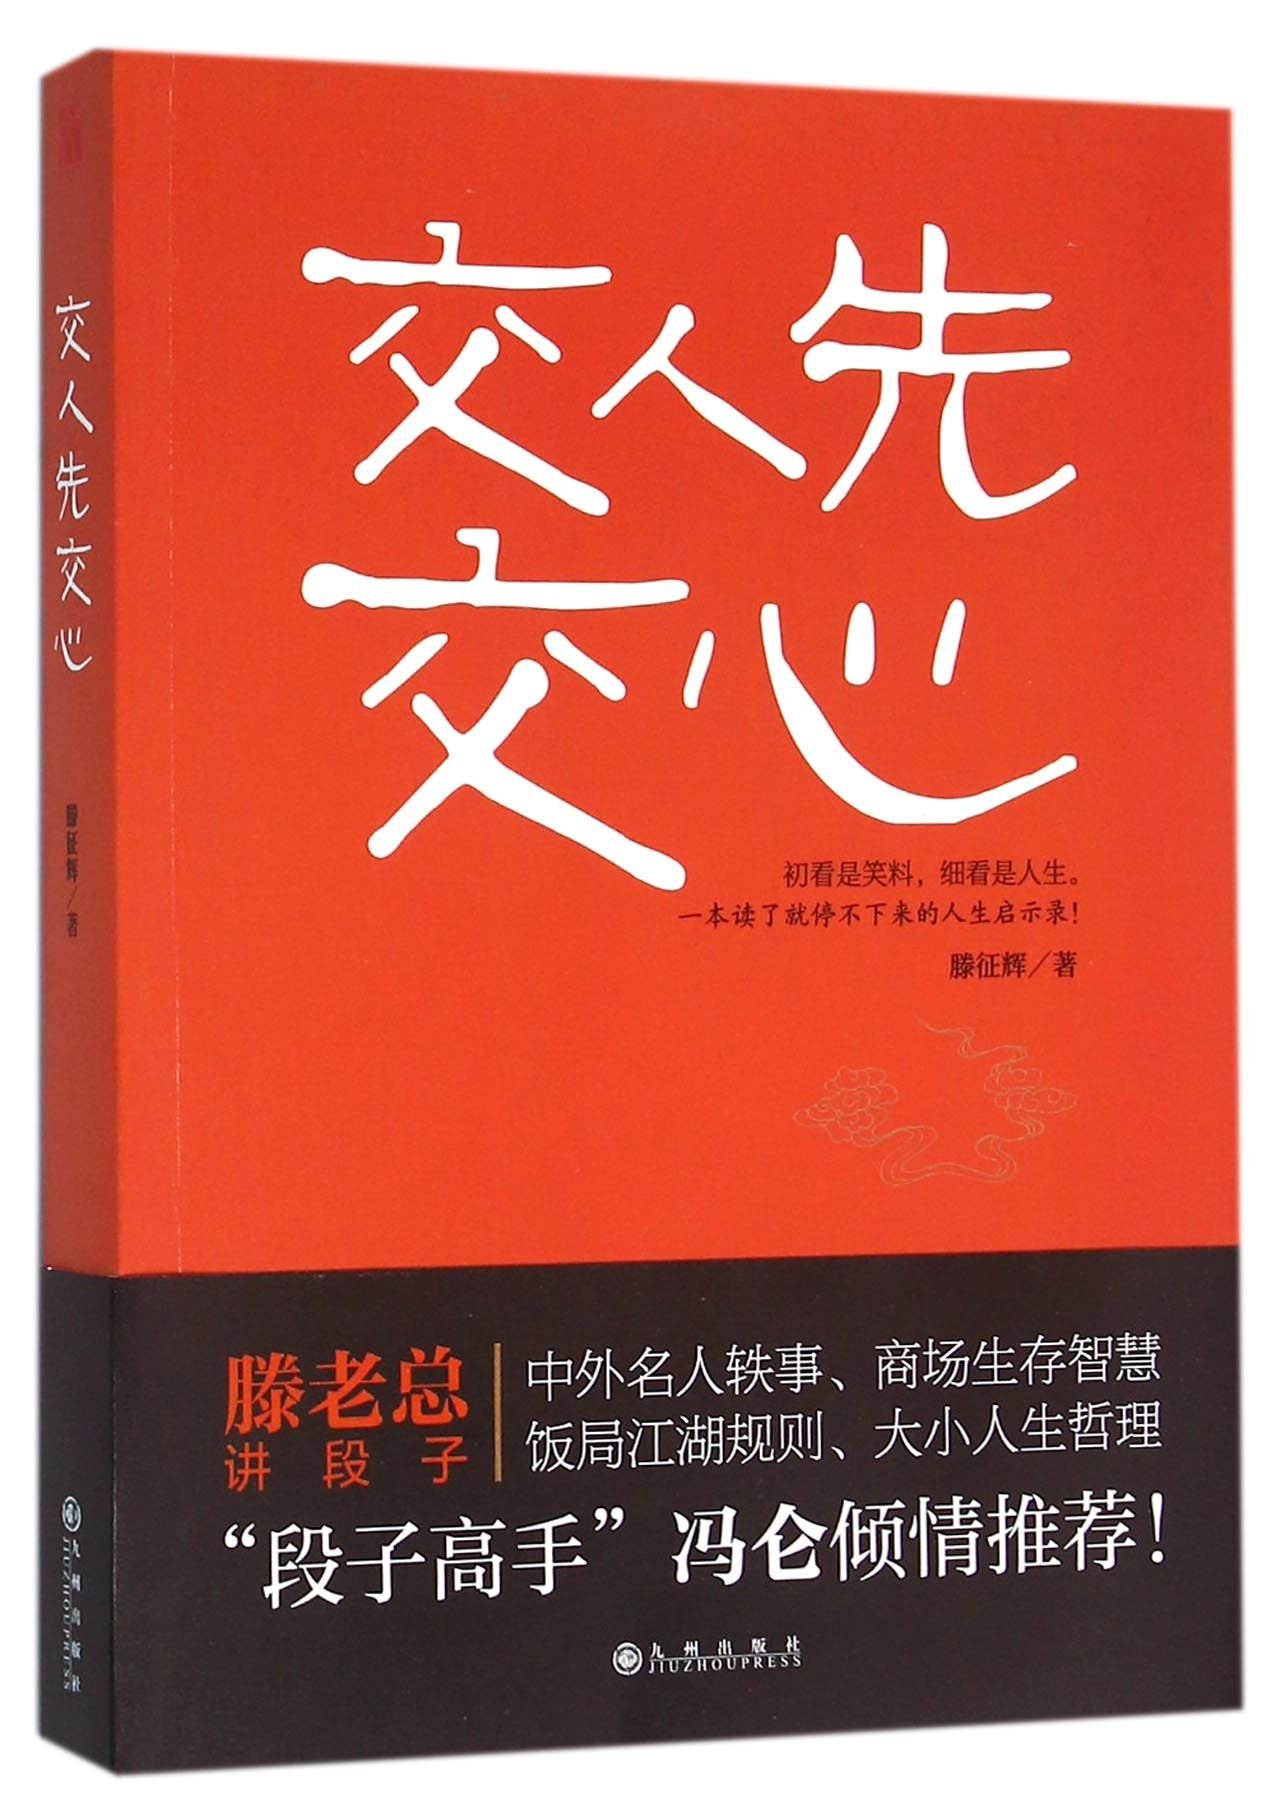 Before Knowing a Person You Should Know His/Her Heart (Chinese Edition) PDF